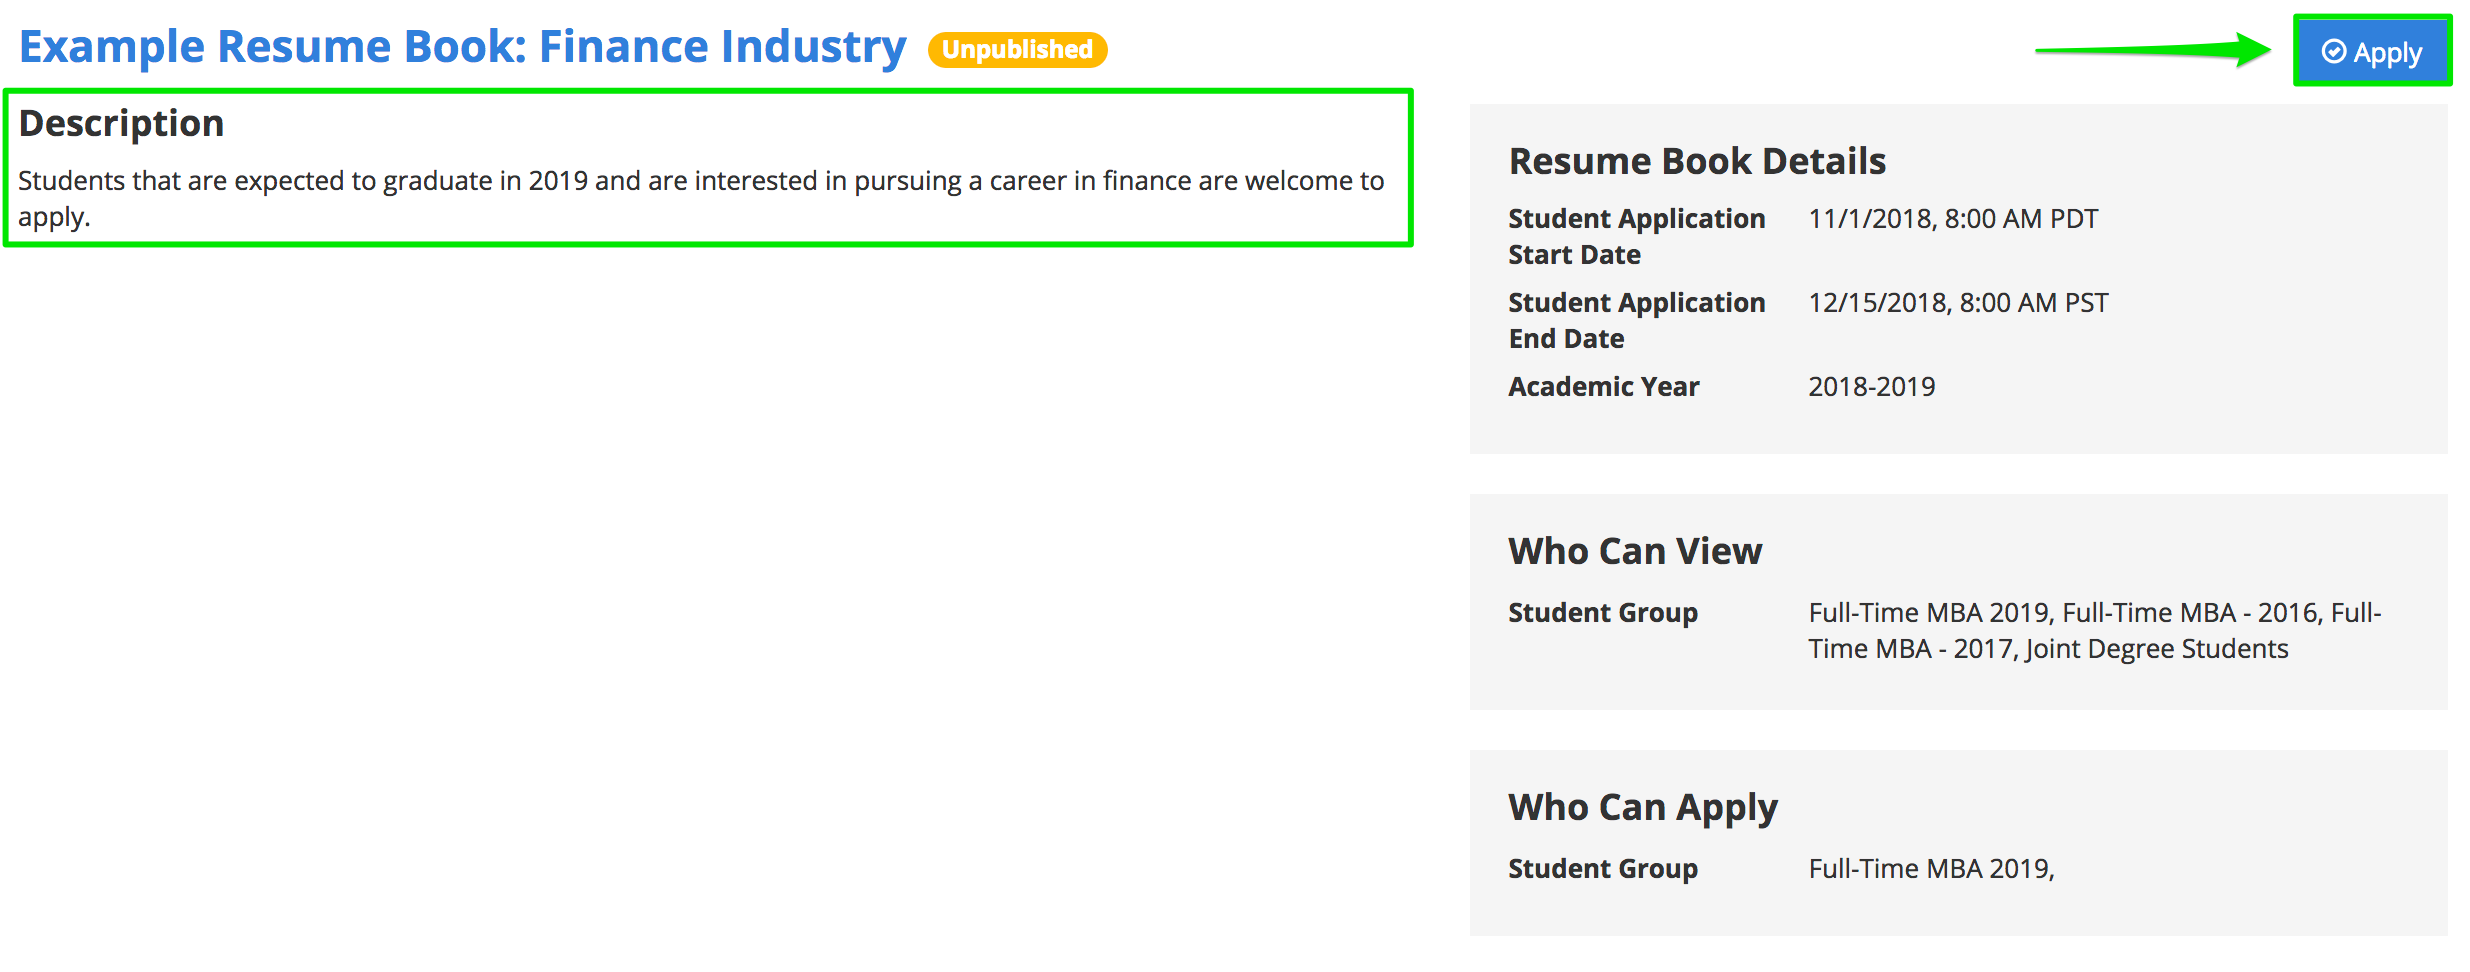 How Does A Student Apply To A Resume Book Support